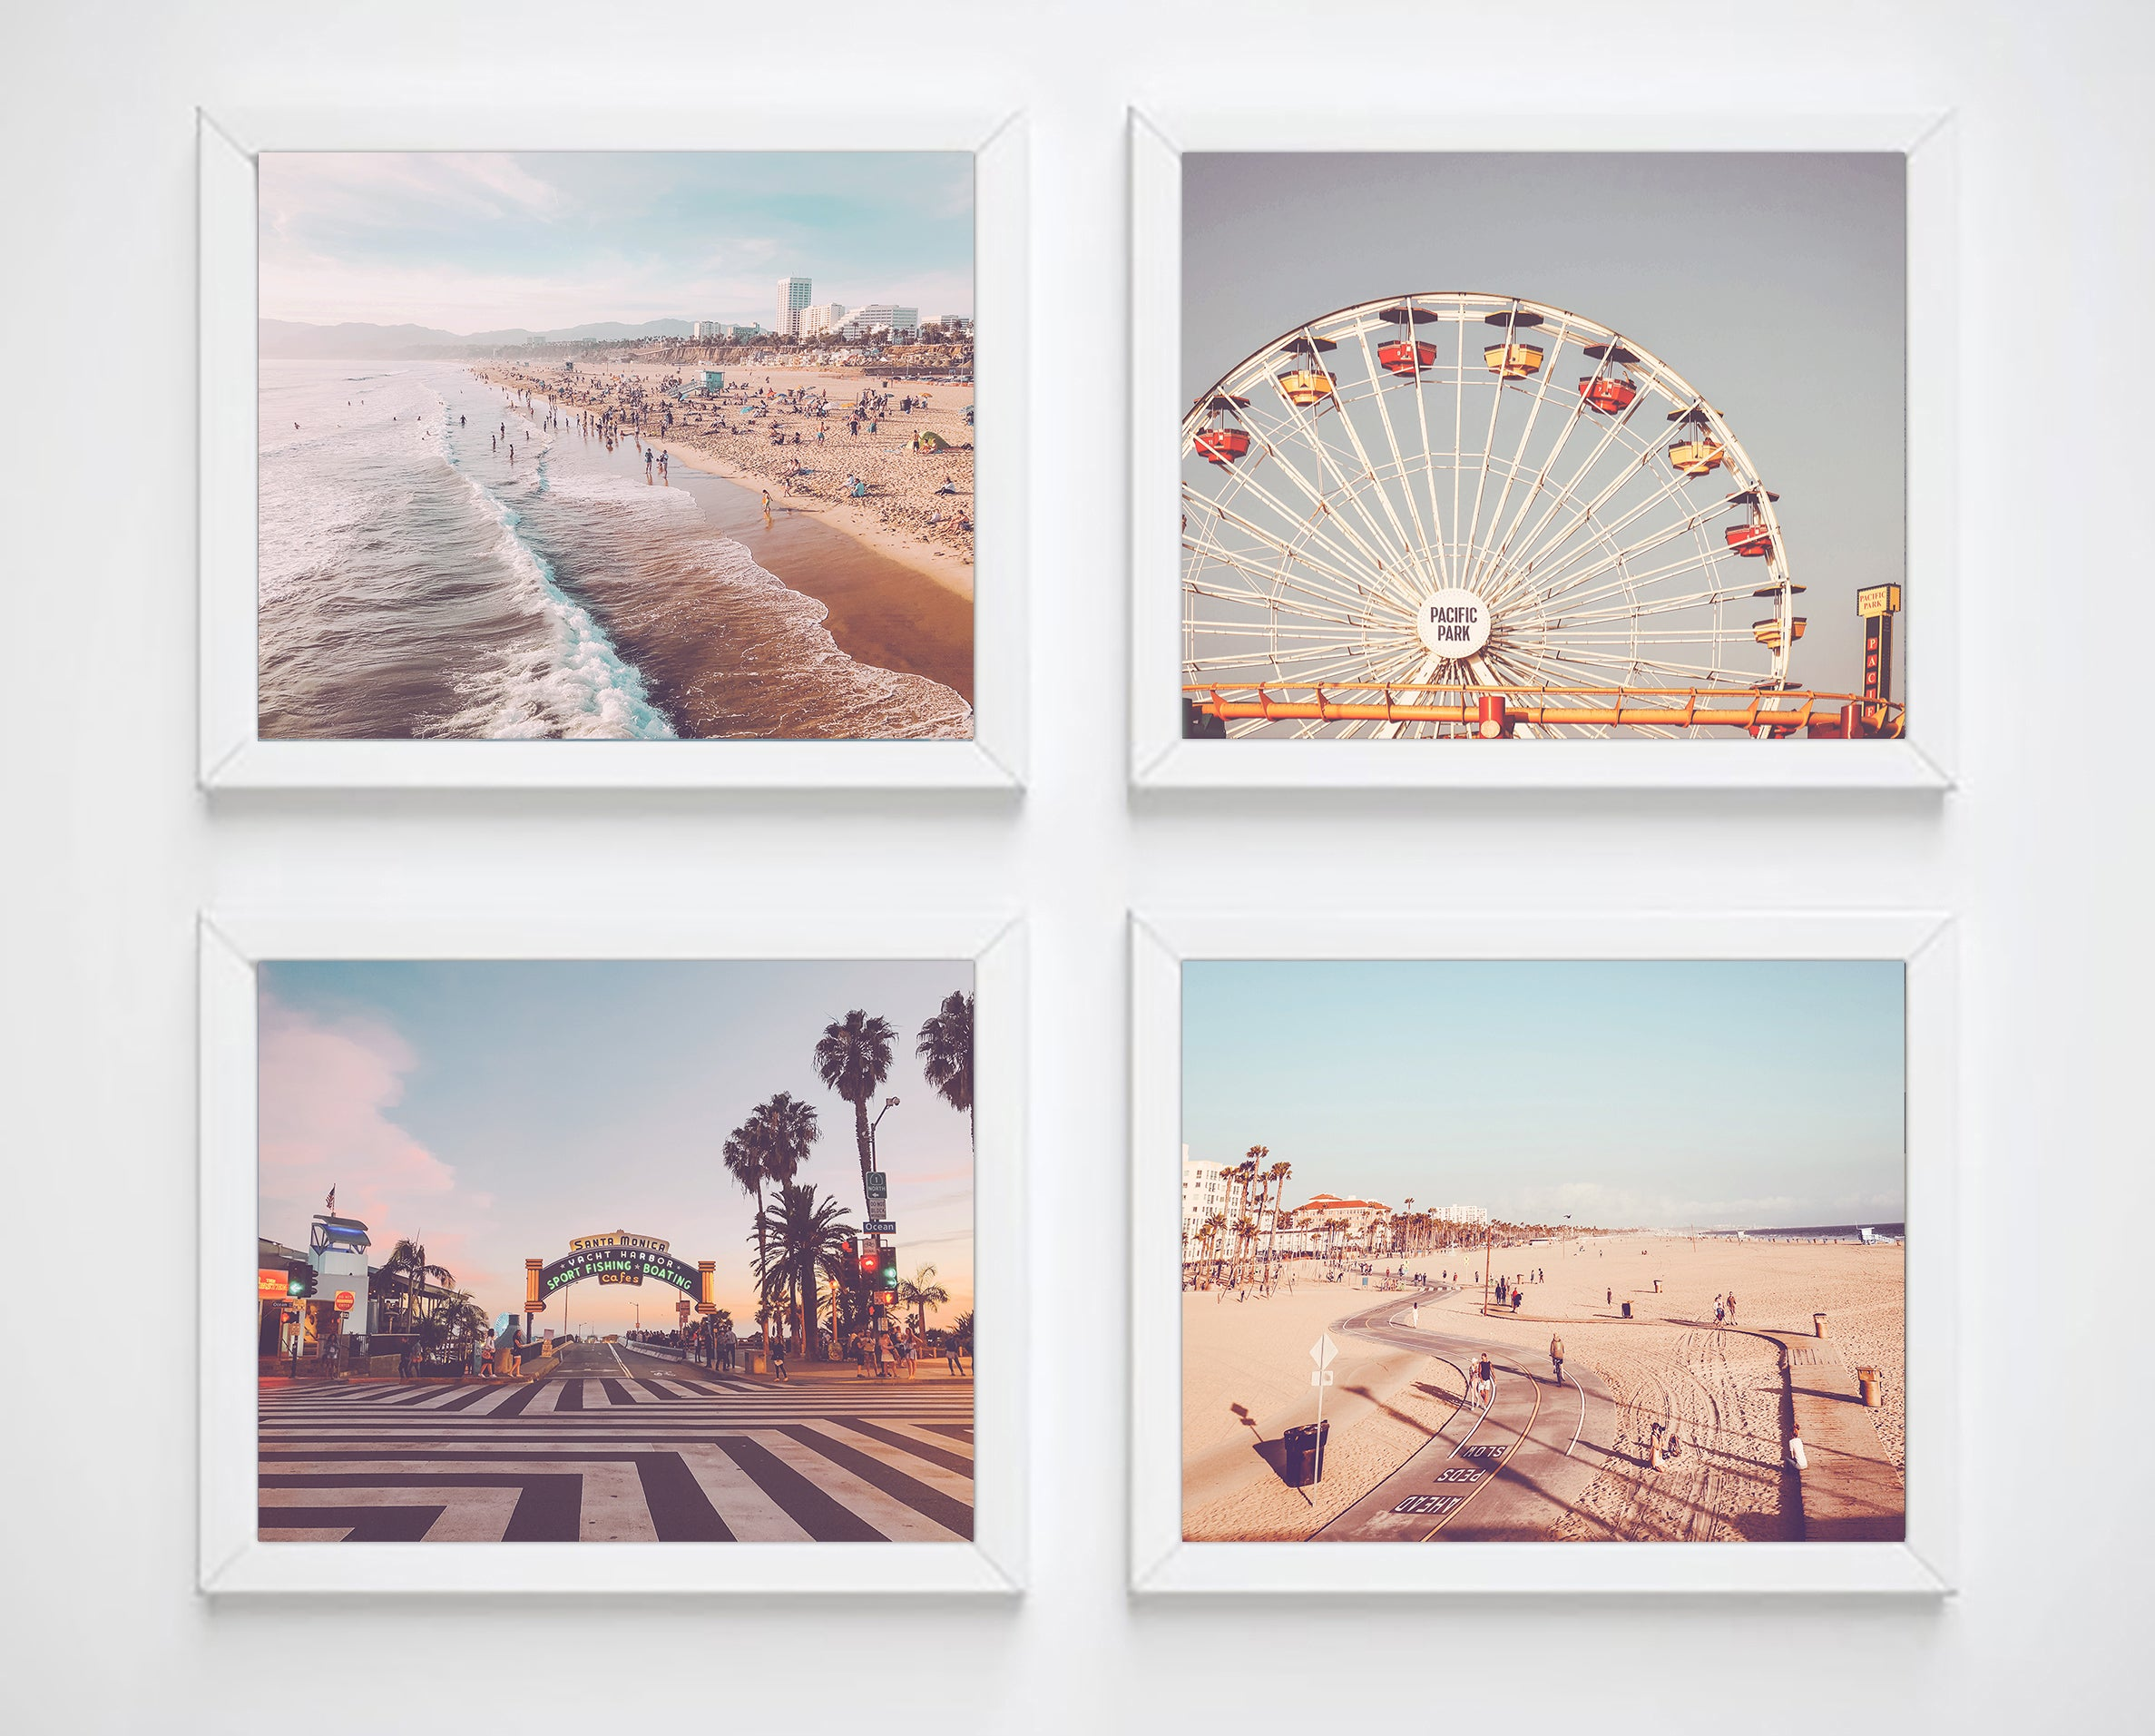 Malibu and Santa Monica California Beach Coastal Photography from Venice Beach Set of 3 Photographic Prints 5x7 or 8x10 with or without matting California Beach Prints